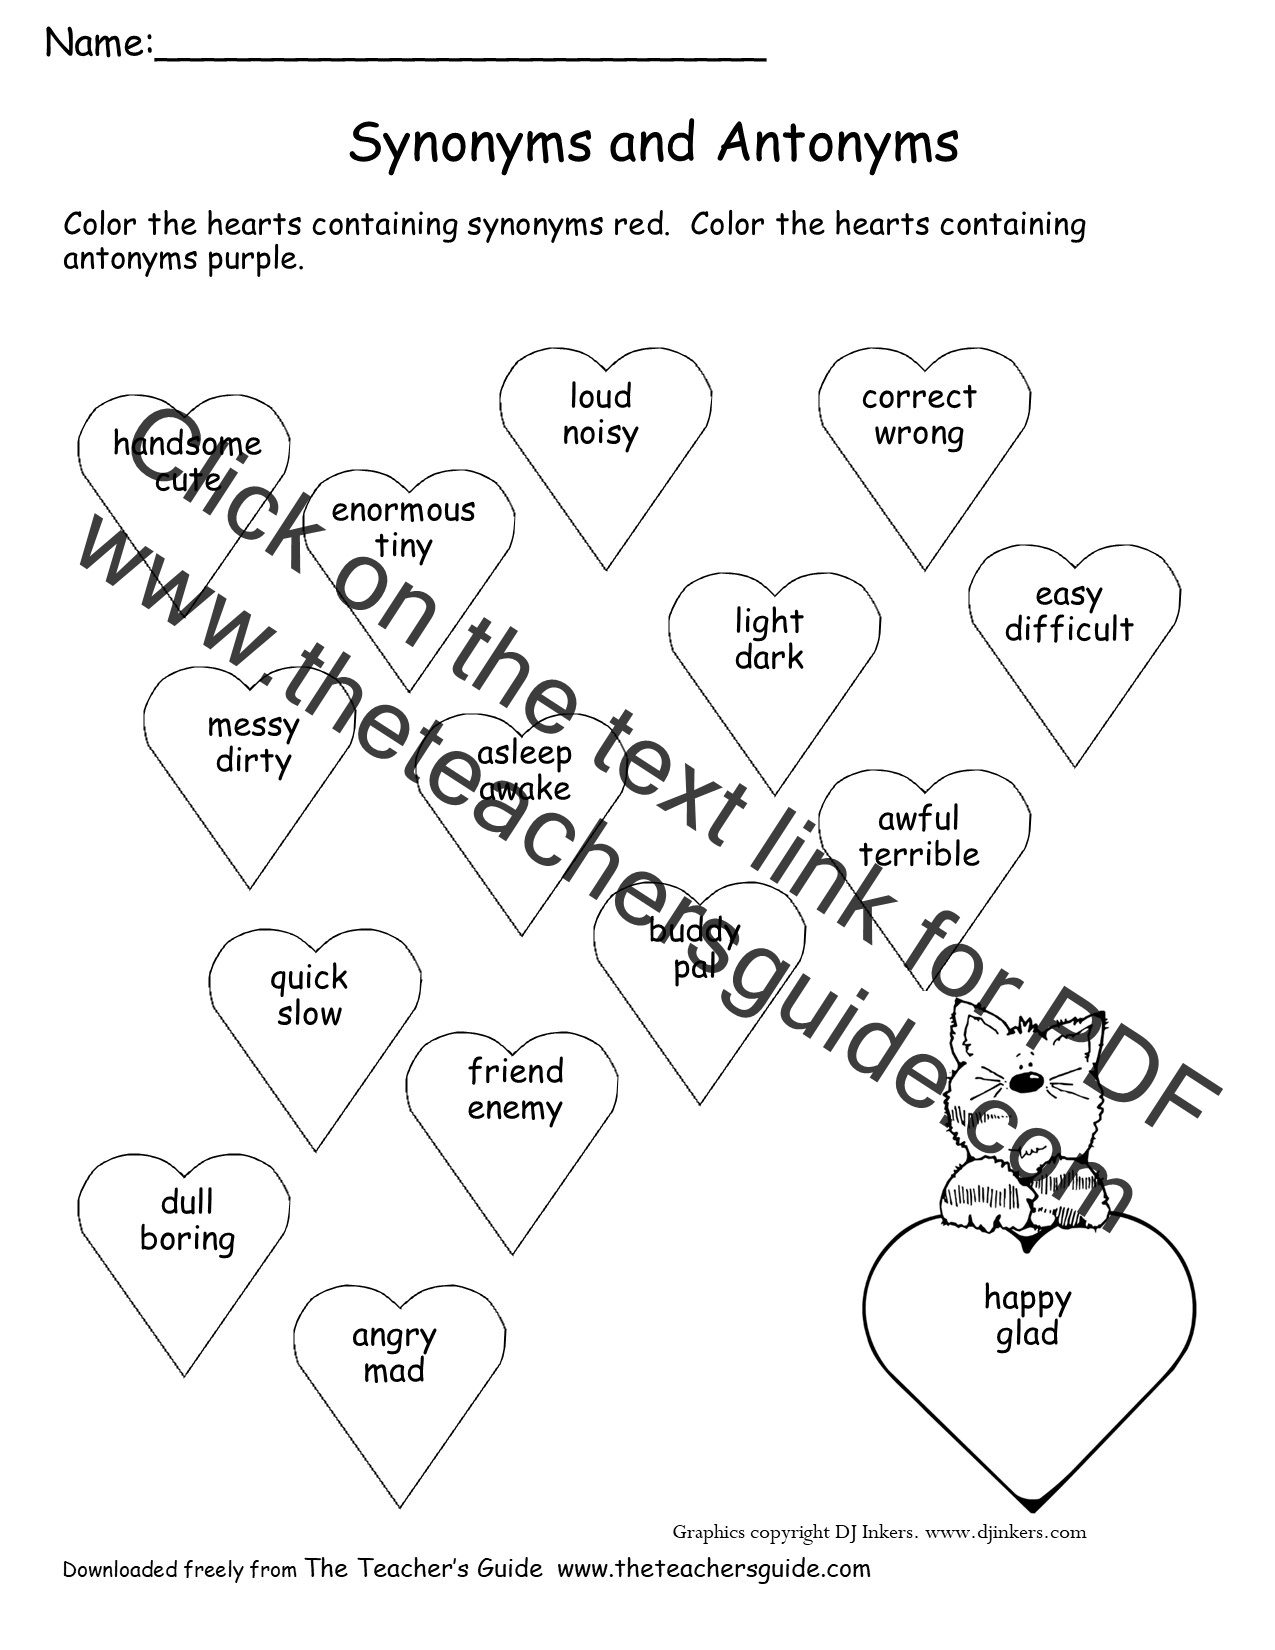 Teaching Synonyms And Antonyms Lawteched – Synonym and Antonym Worksheet